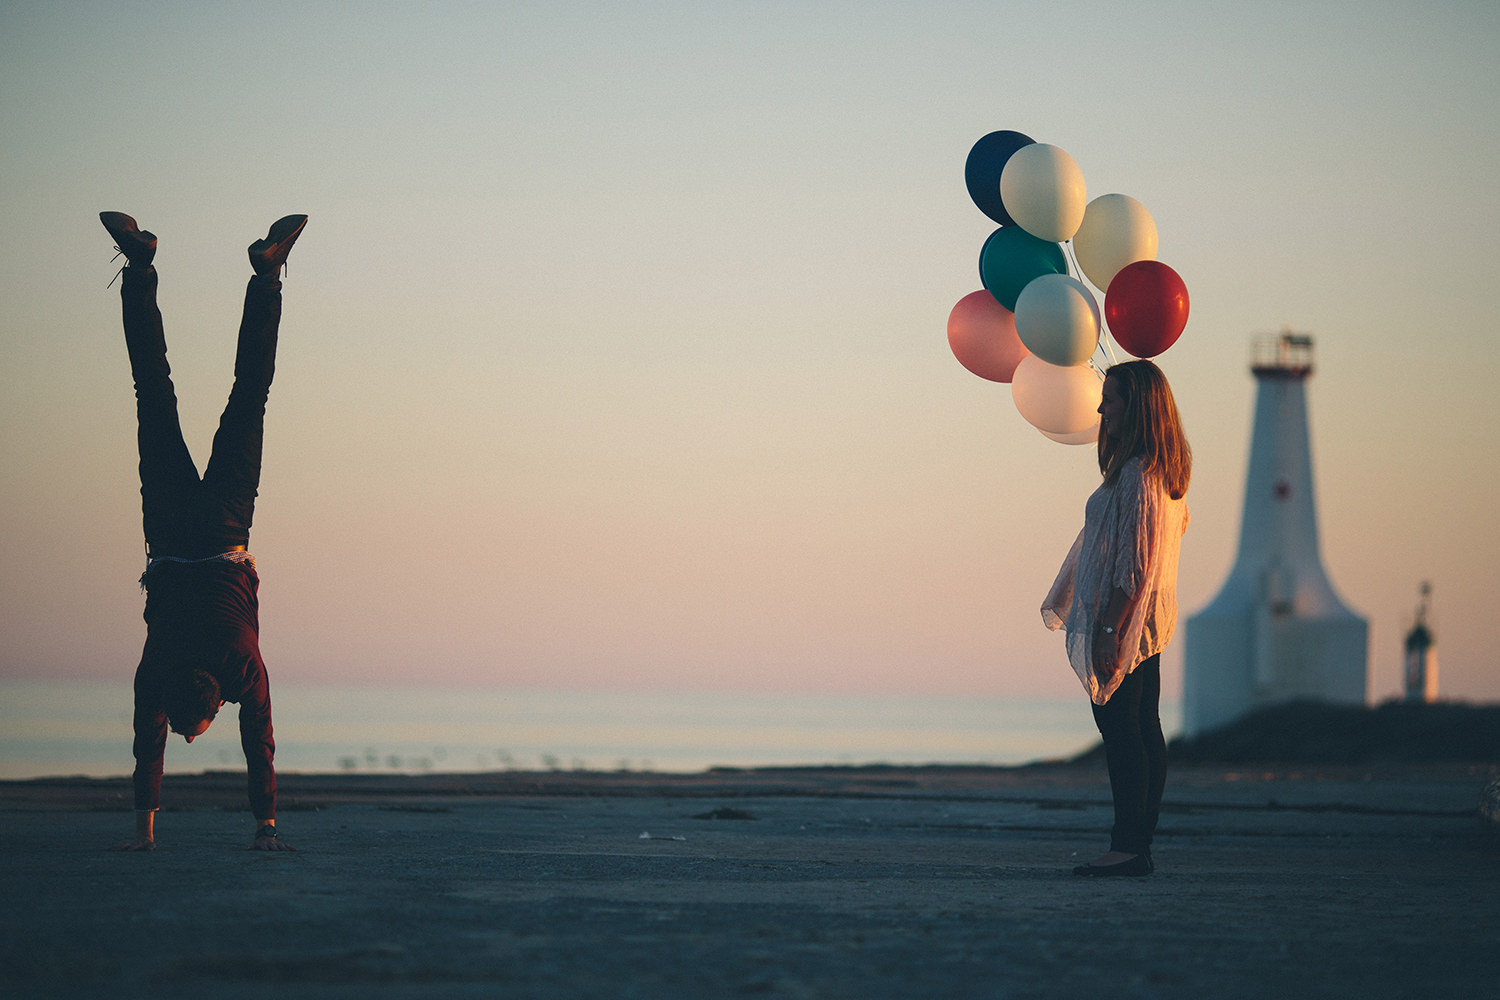 handstand-groom-bride-balloons-sunset-engagement-photographer-4